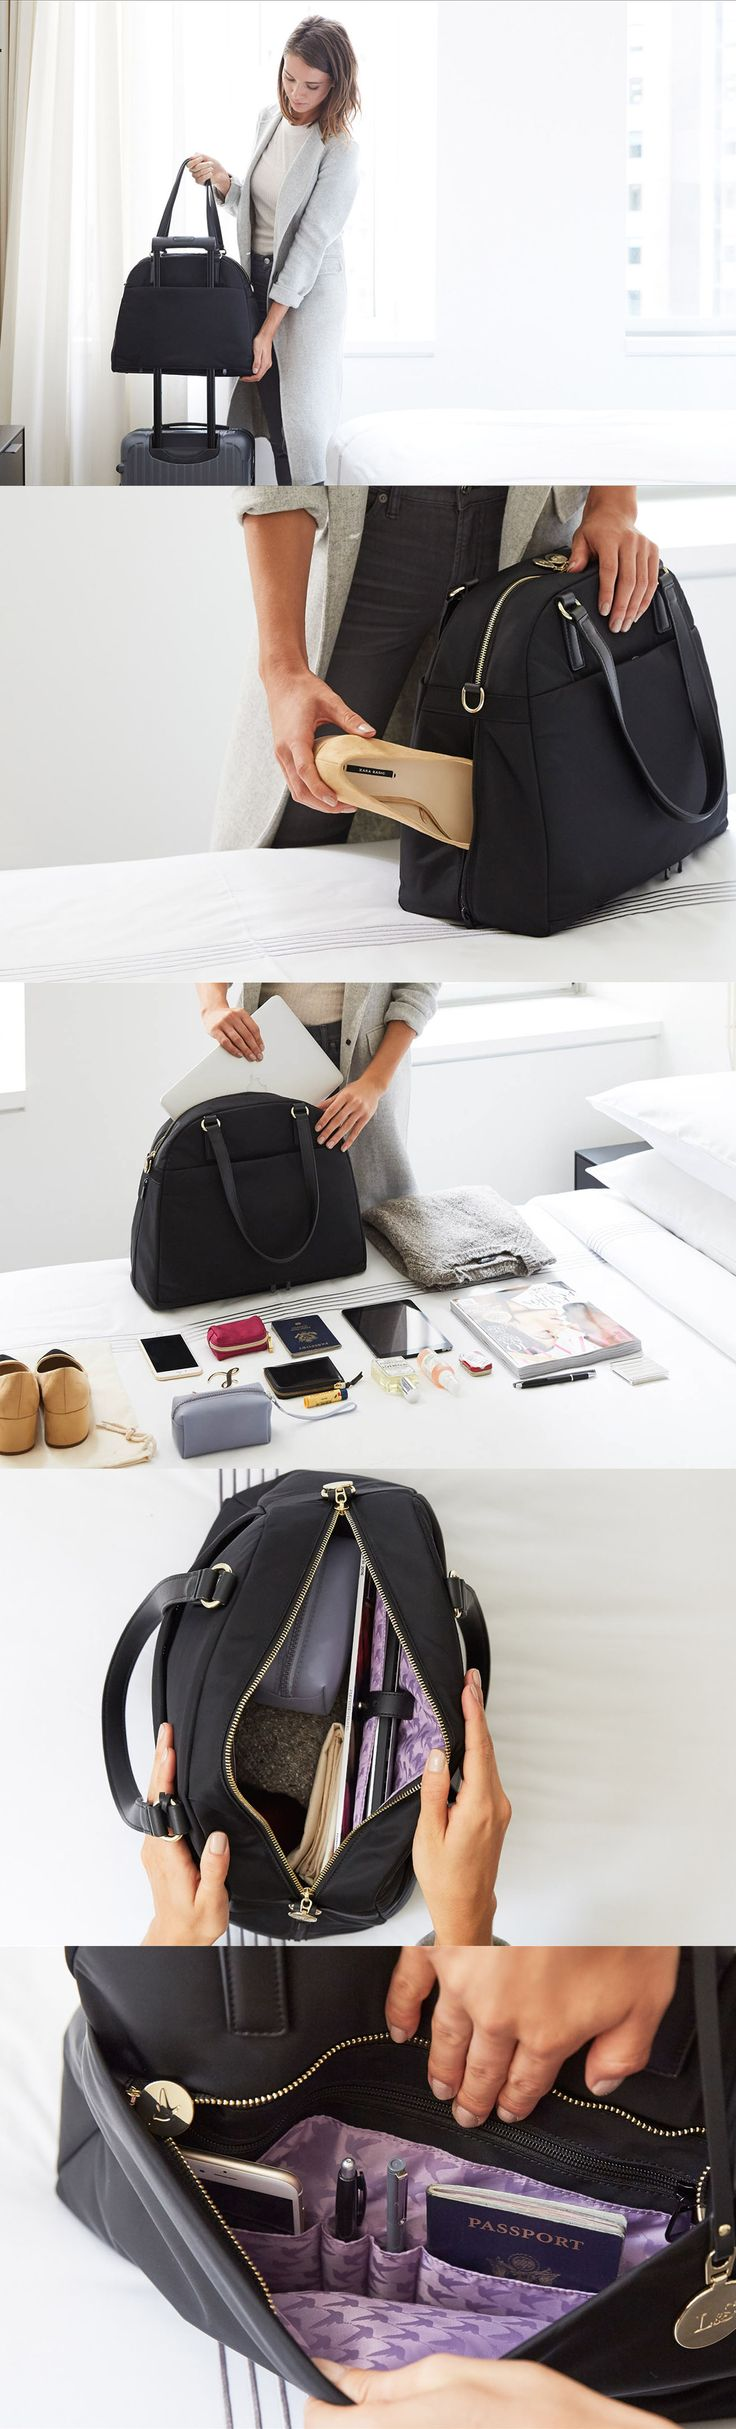 The O.G. is a high-quality lightweight travel bag that is designed for the demands of the on-the-go lifestyle. Thoughtfully designed with features to help you stay organized including a back panel suitcase sleeve, side shoe pocket, a built in laptop sleeve and tons of interior pockets. #loandsons